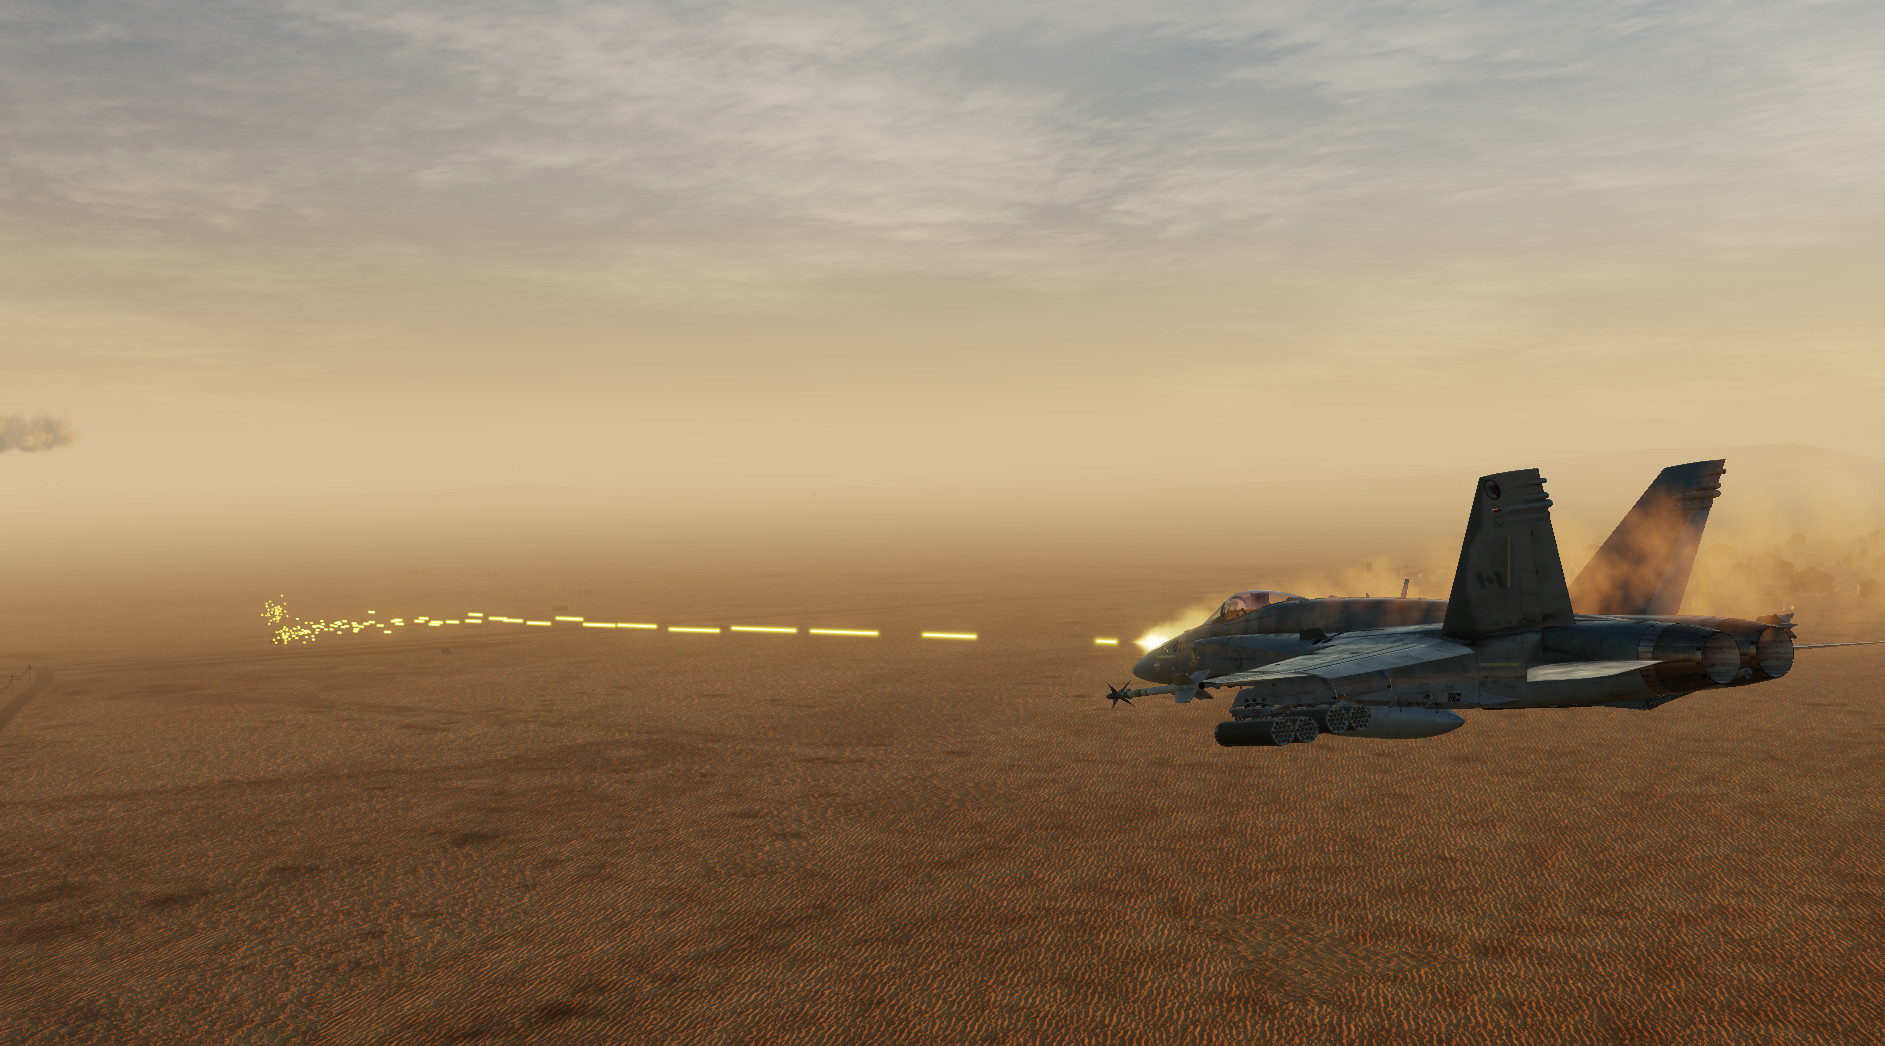 Flight of the Phoenix (Supercarrier edition)